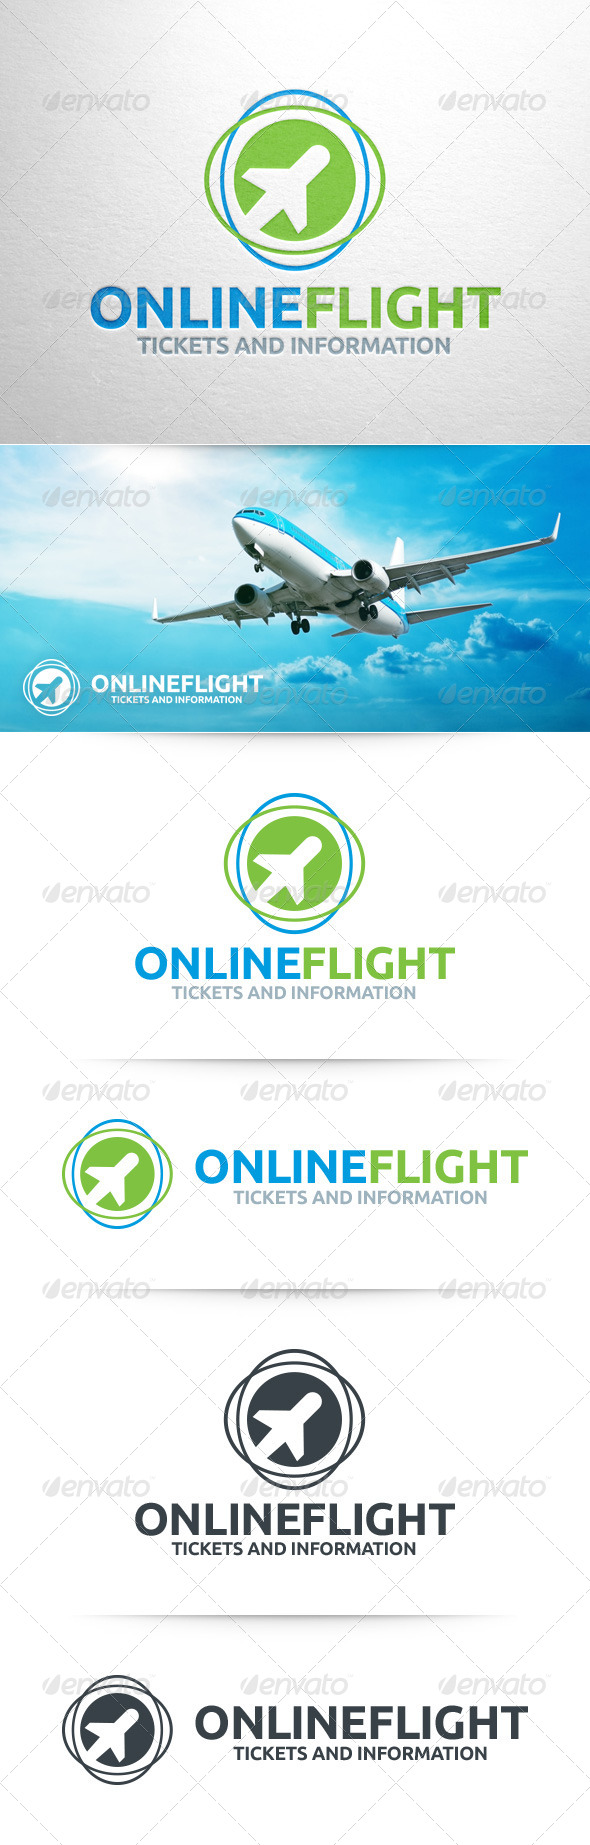 GraphicRiver Online Flight Logo Template 8343451